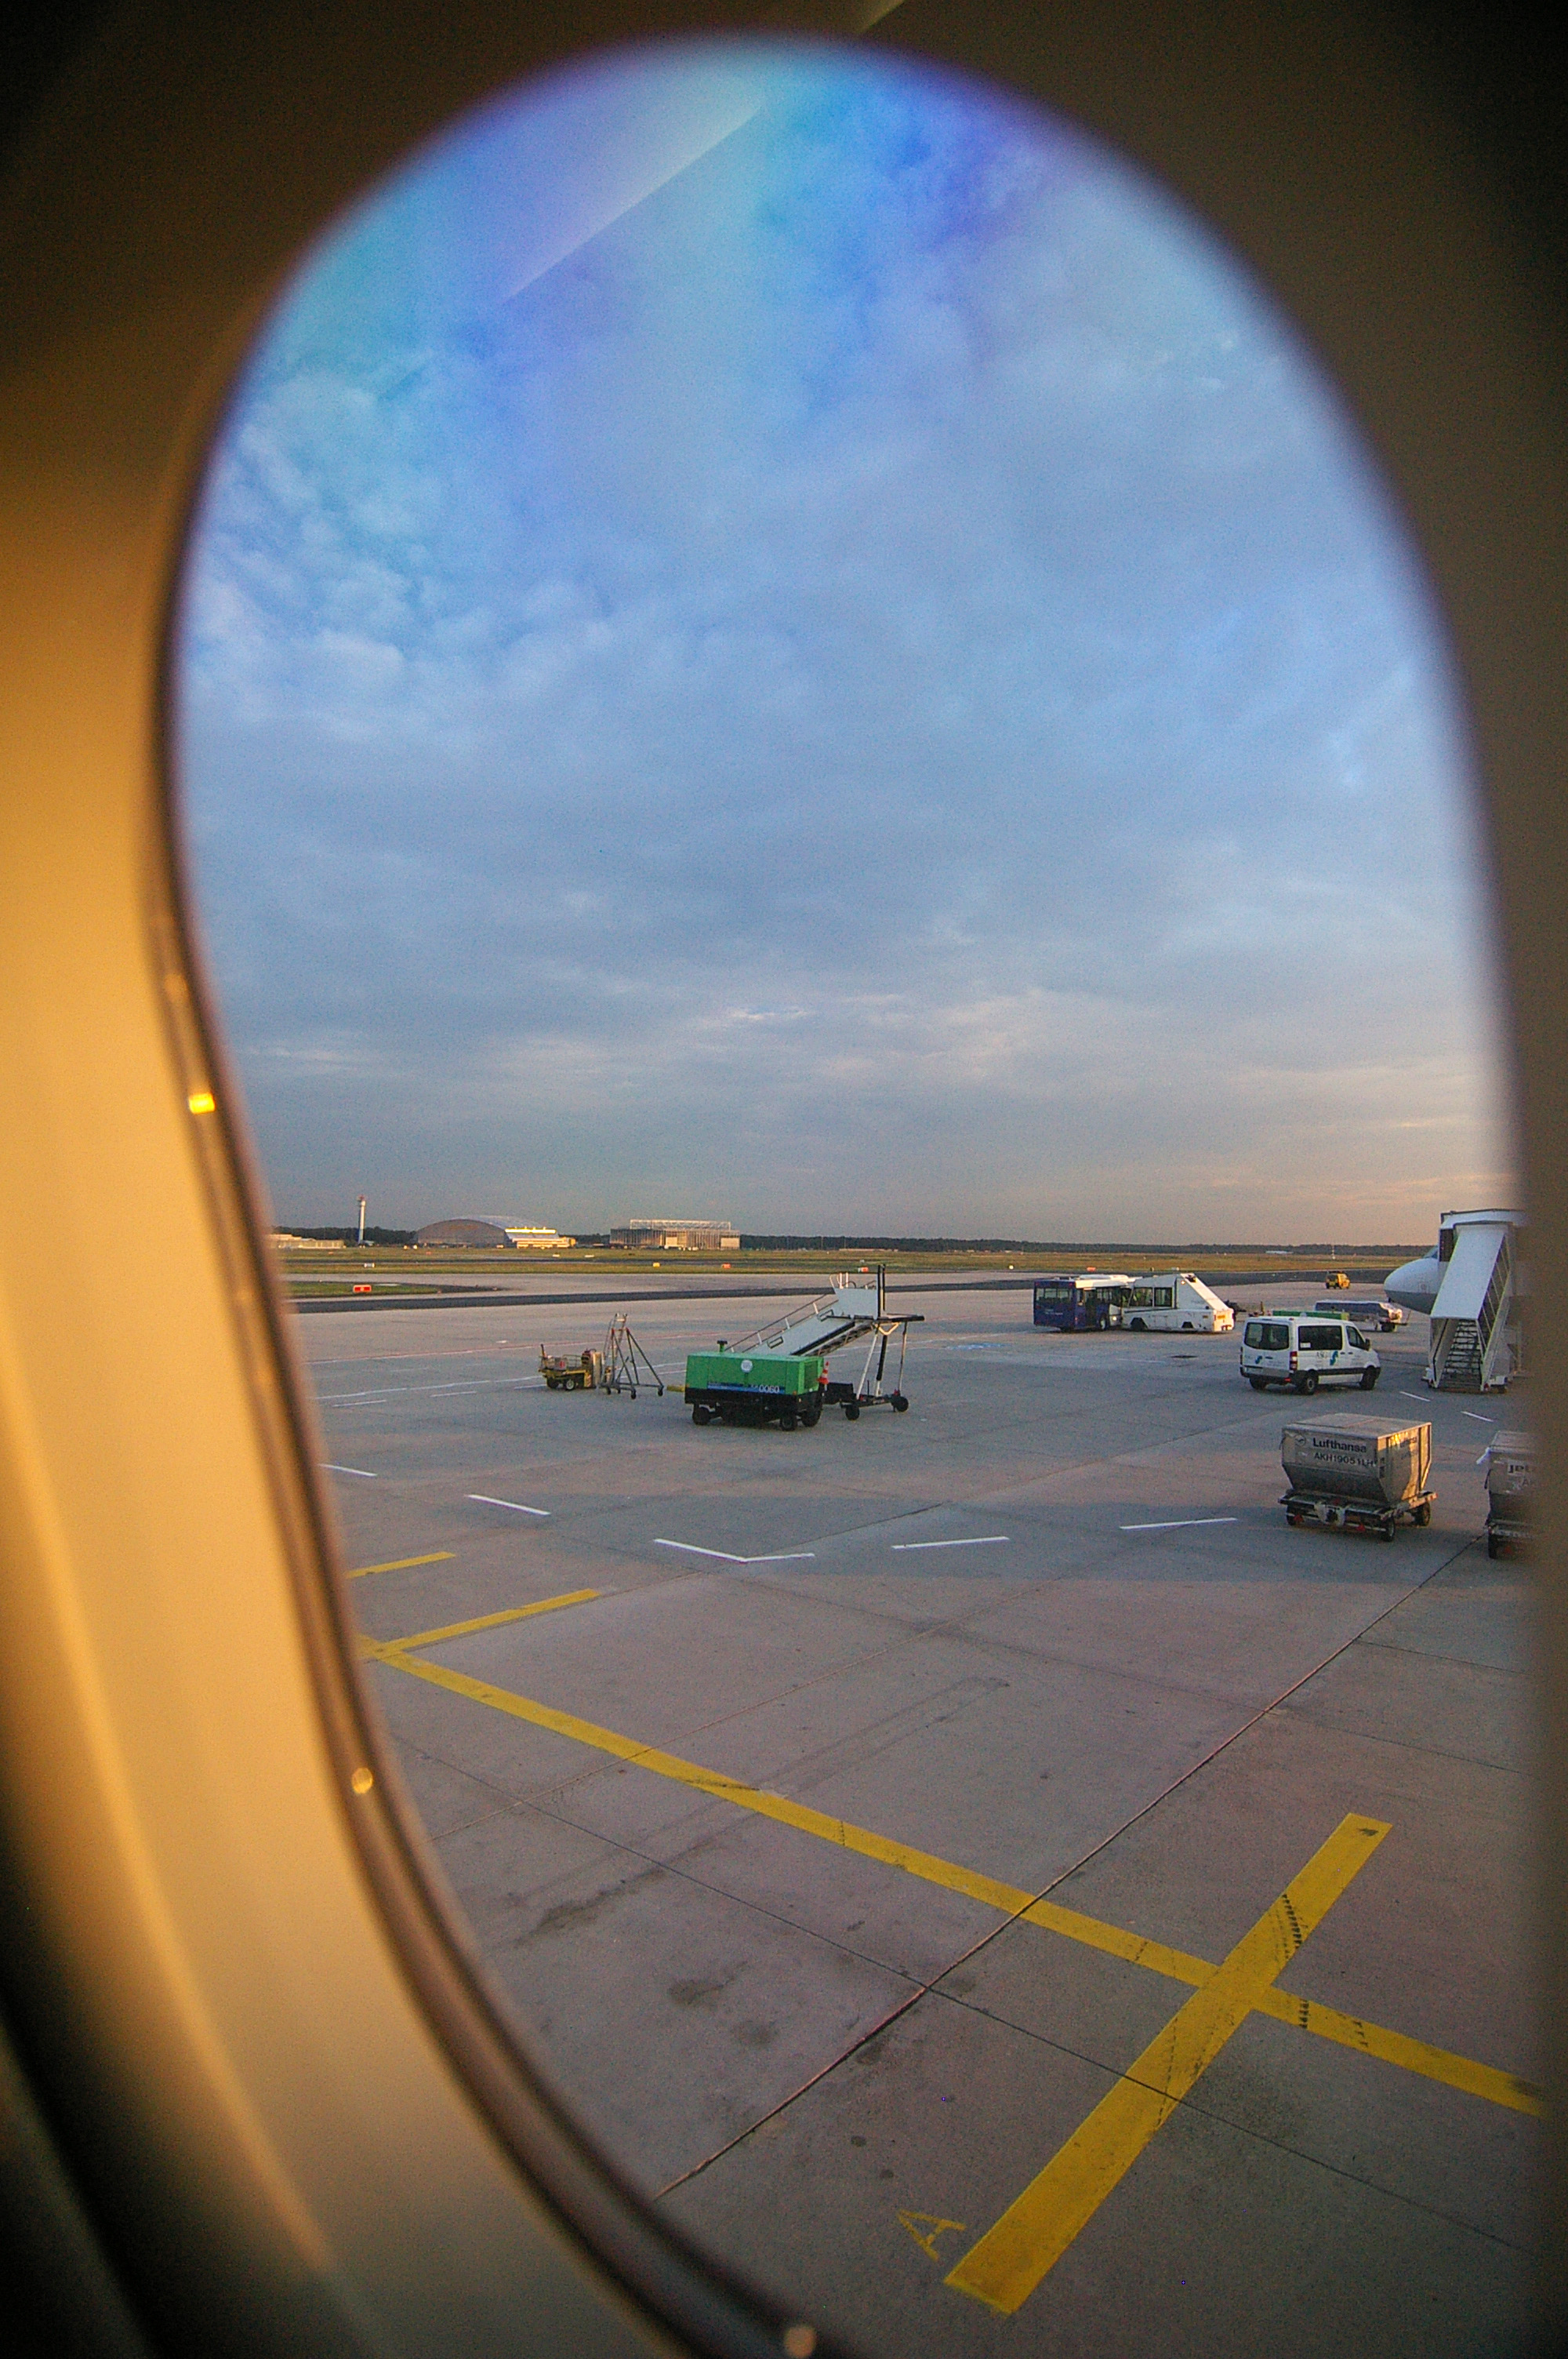 Free Stock Photo 2343 Before Takeoff Freeimageslive